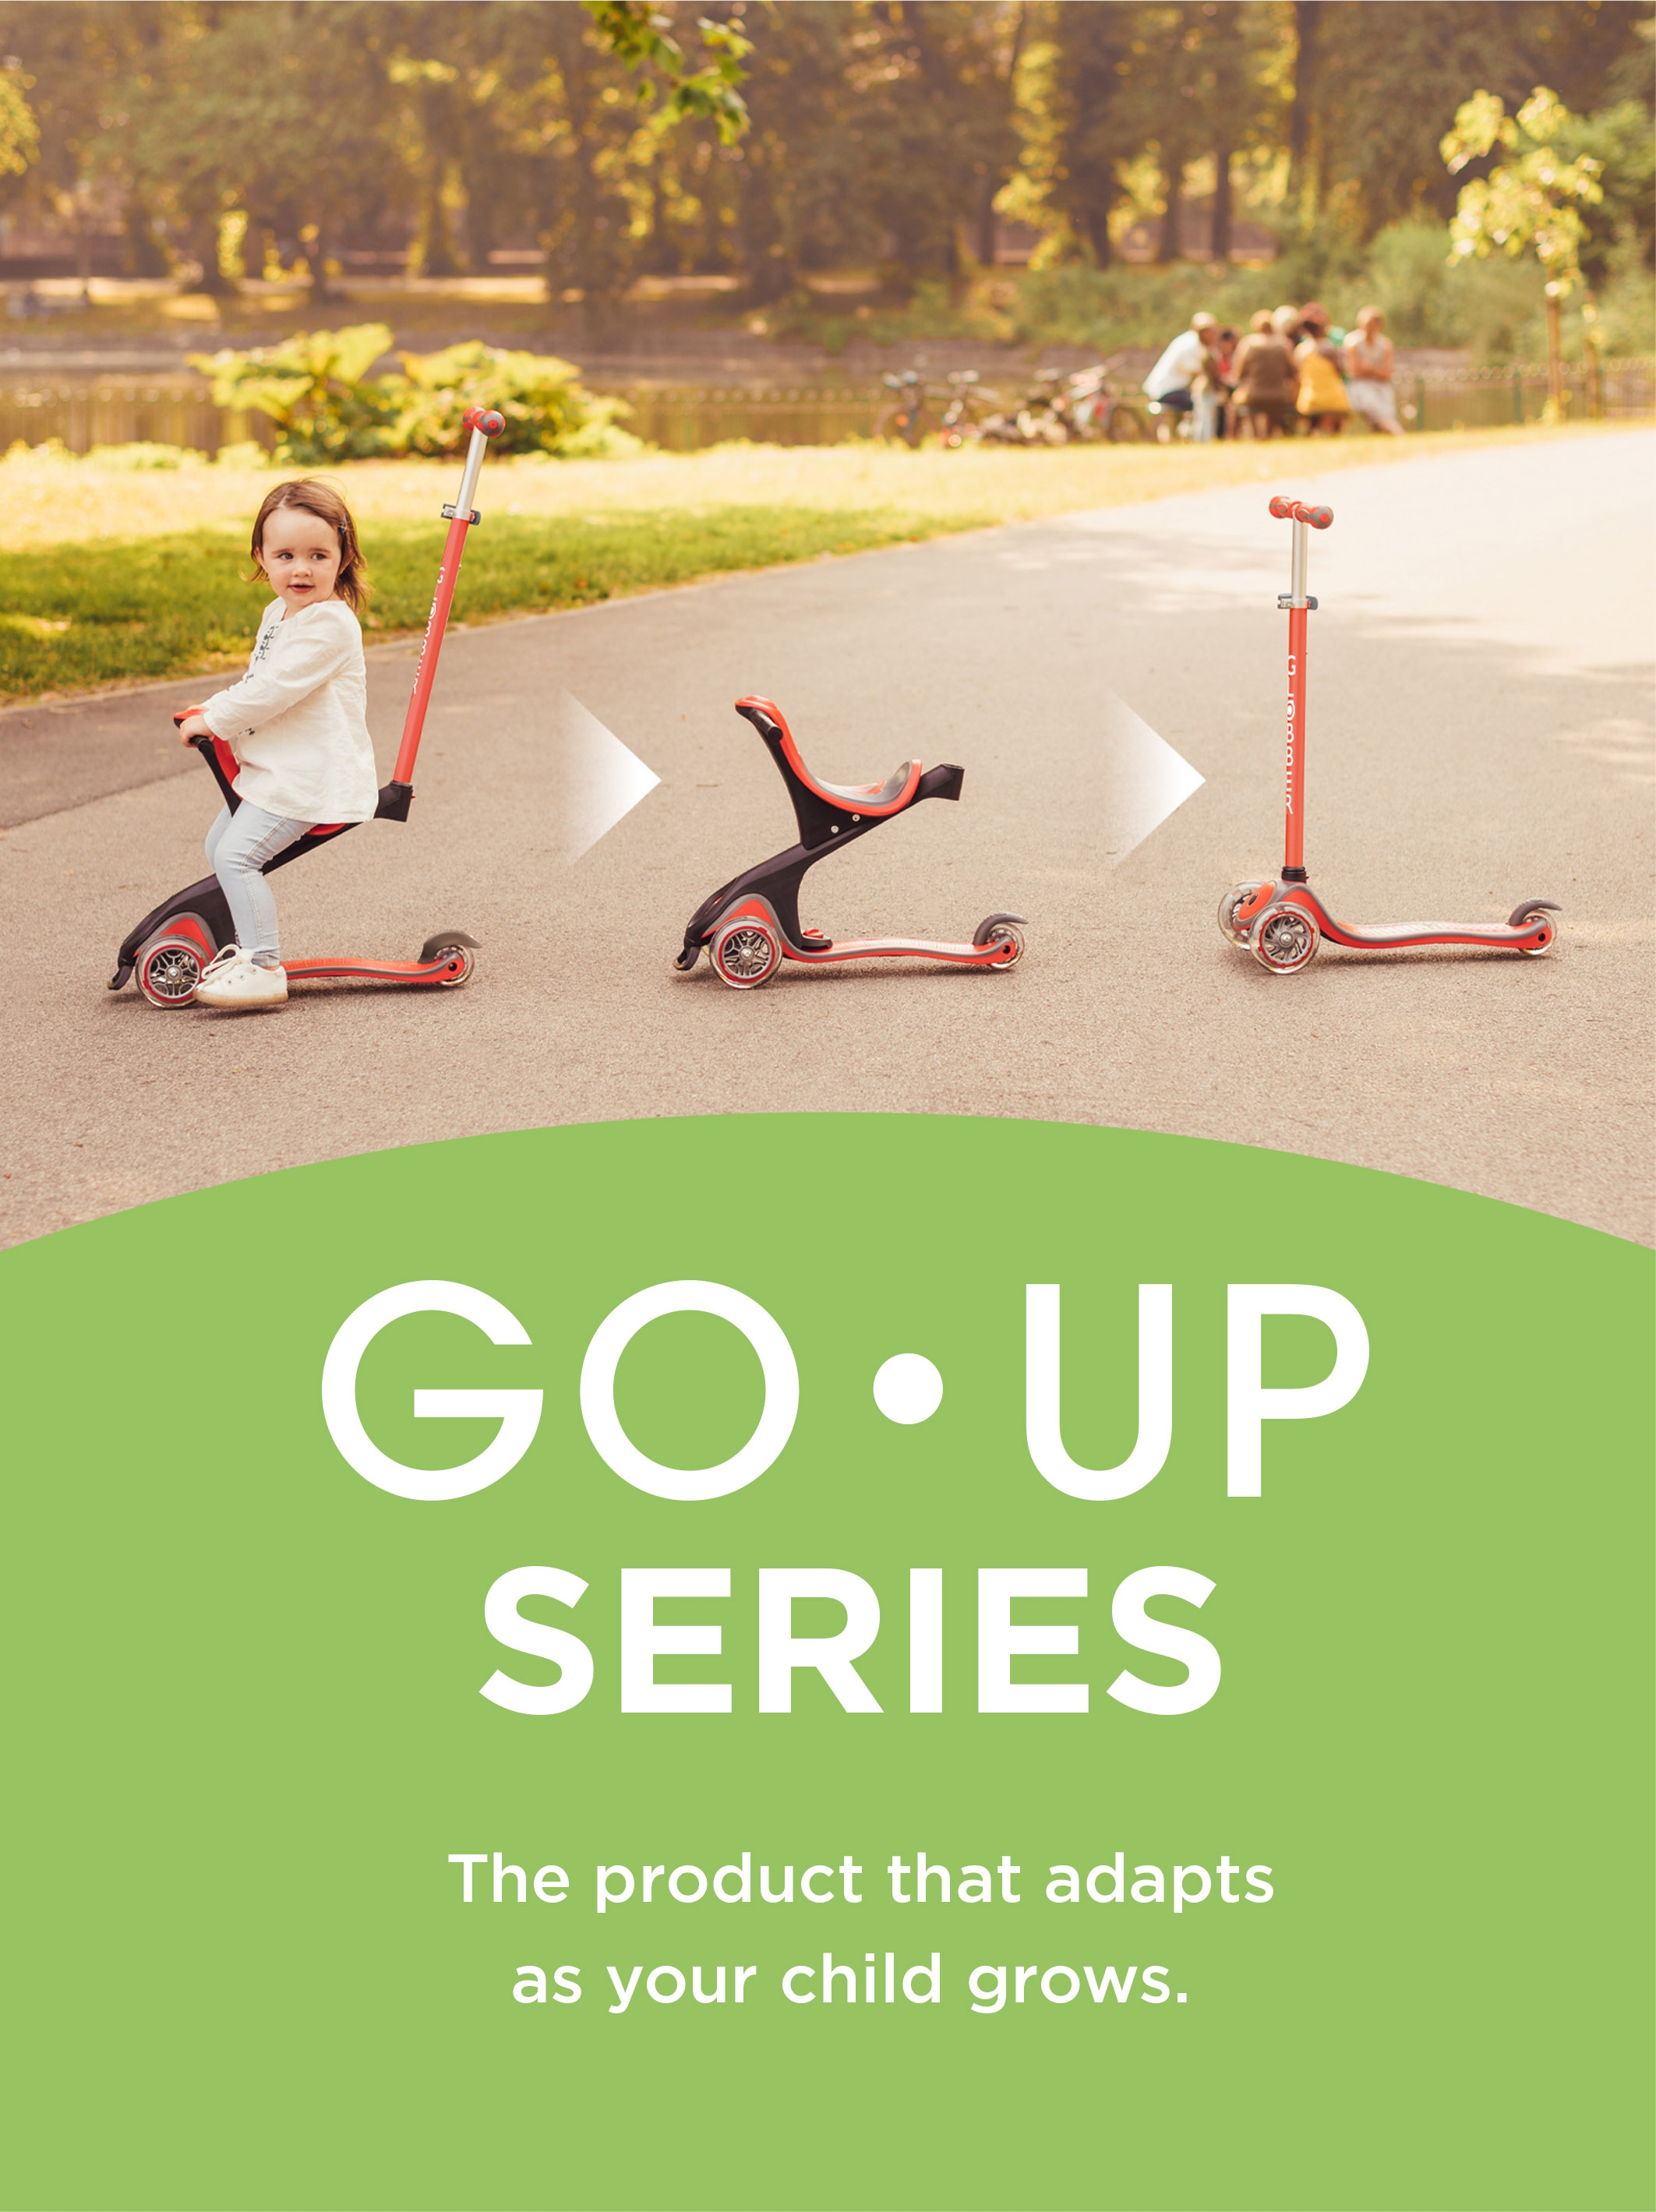 Globber-GO-UP-toddler-scooters-with-seat-adapts-as-your-child-grows